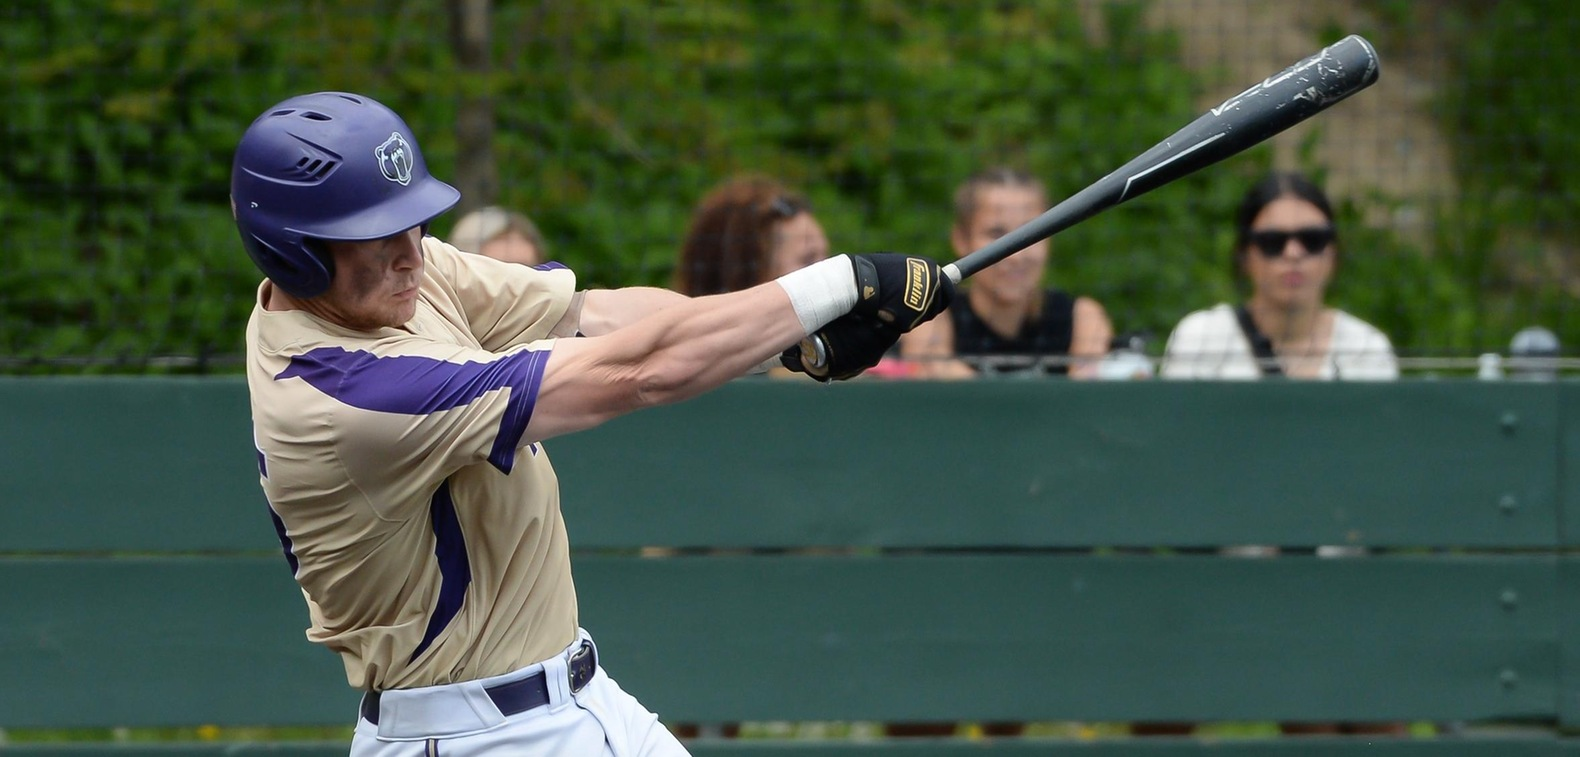 Riley Baasch notched his milestone 200th RBI in Monday's first championship game.